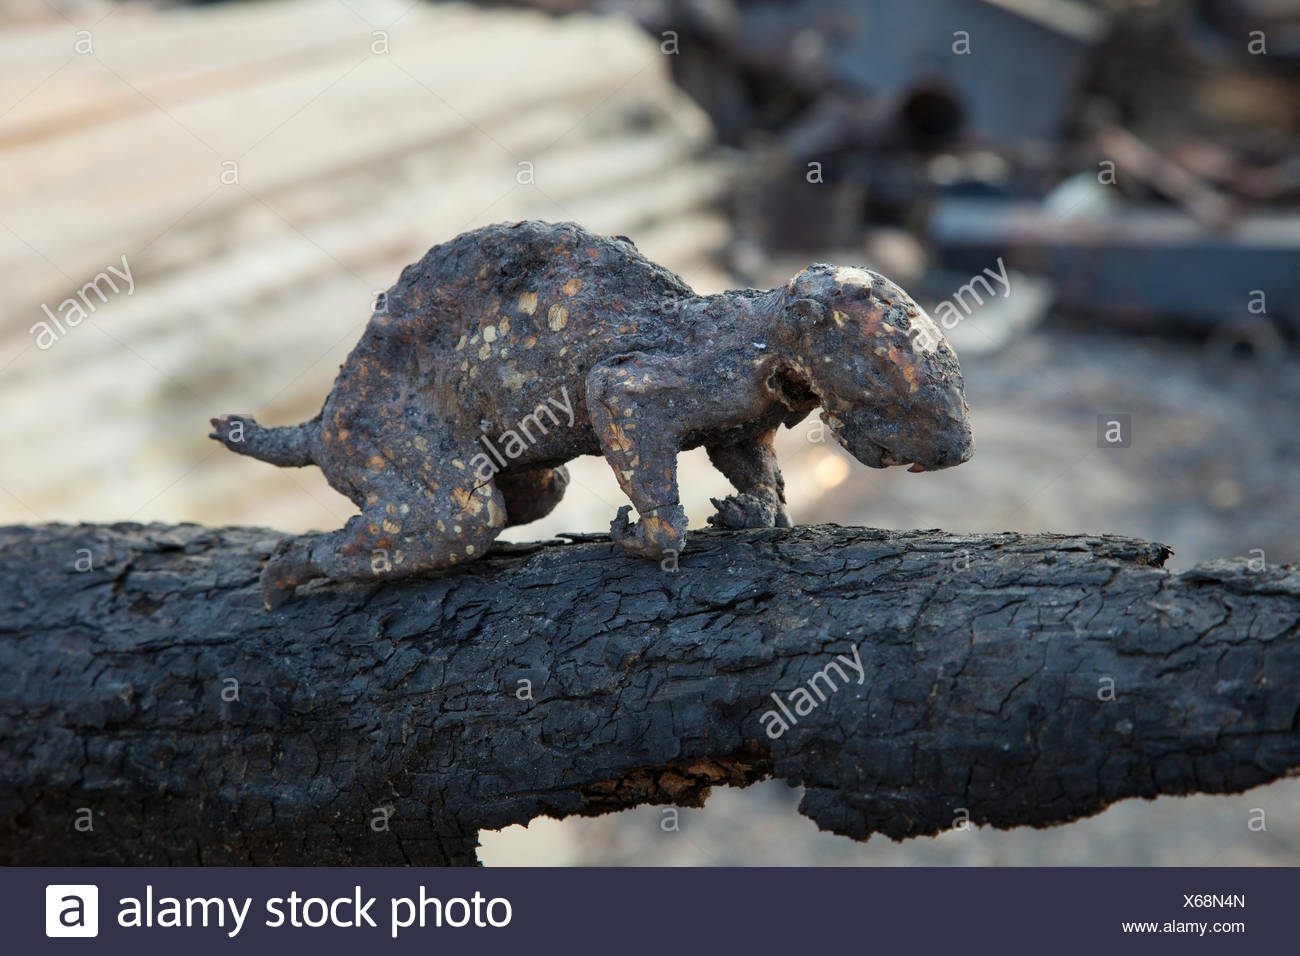 The charred remains of a squirrel burned in a wildfire. - Stock Image